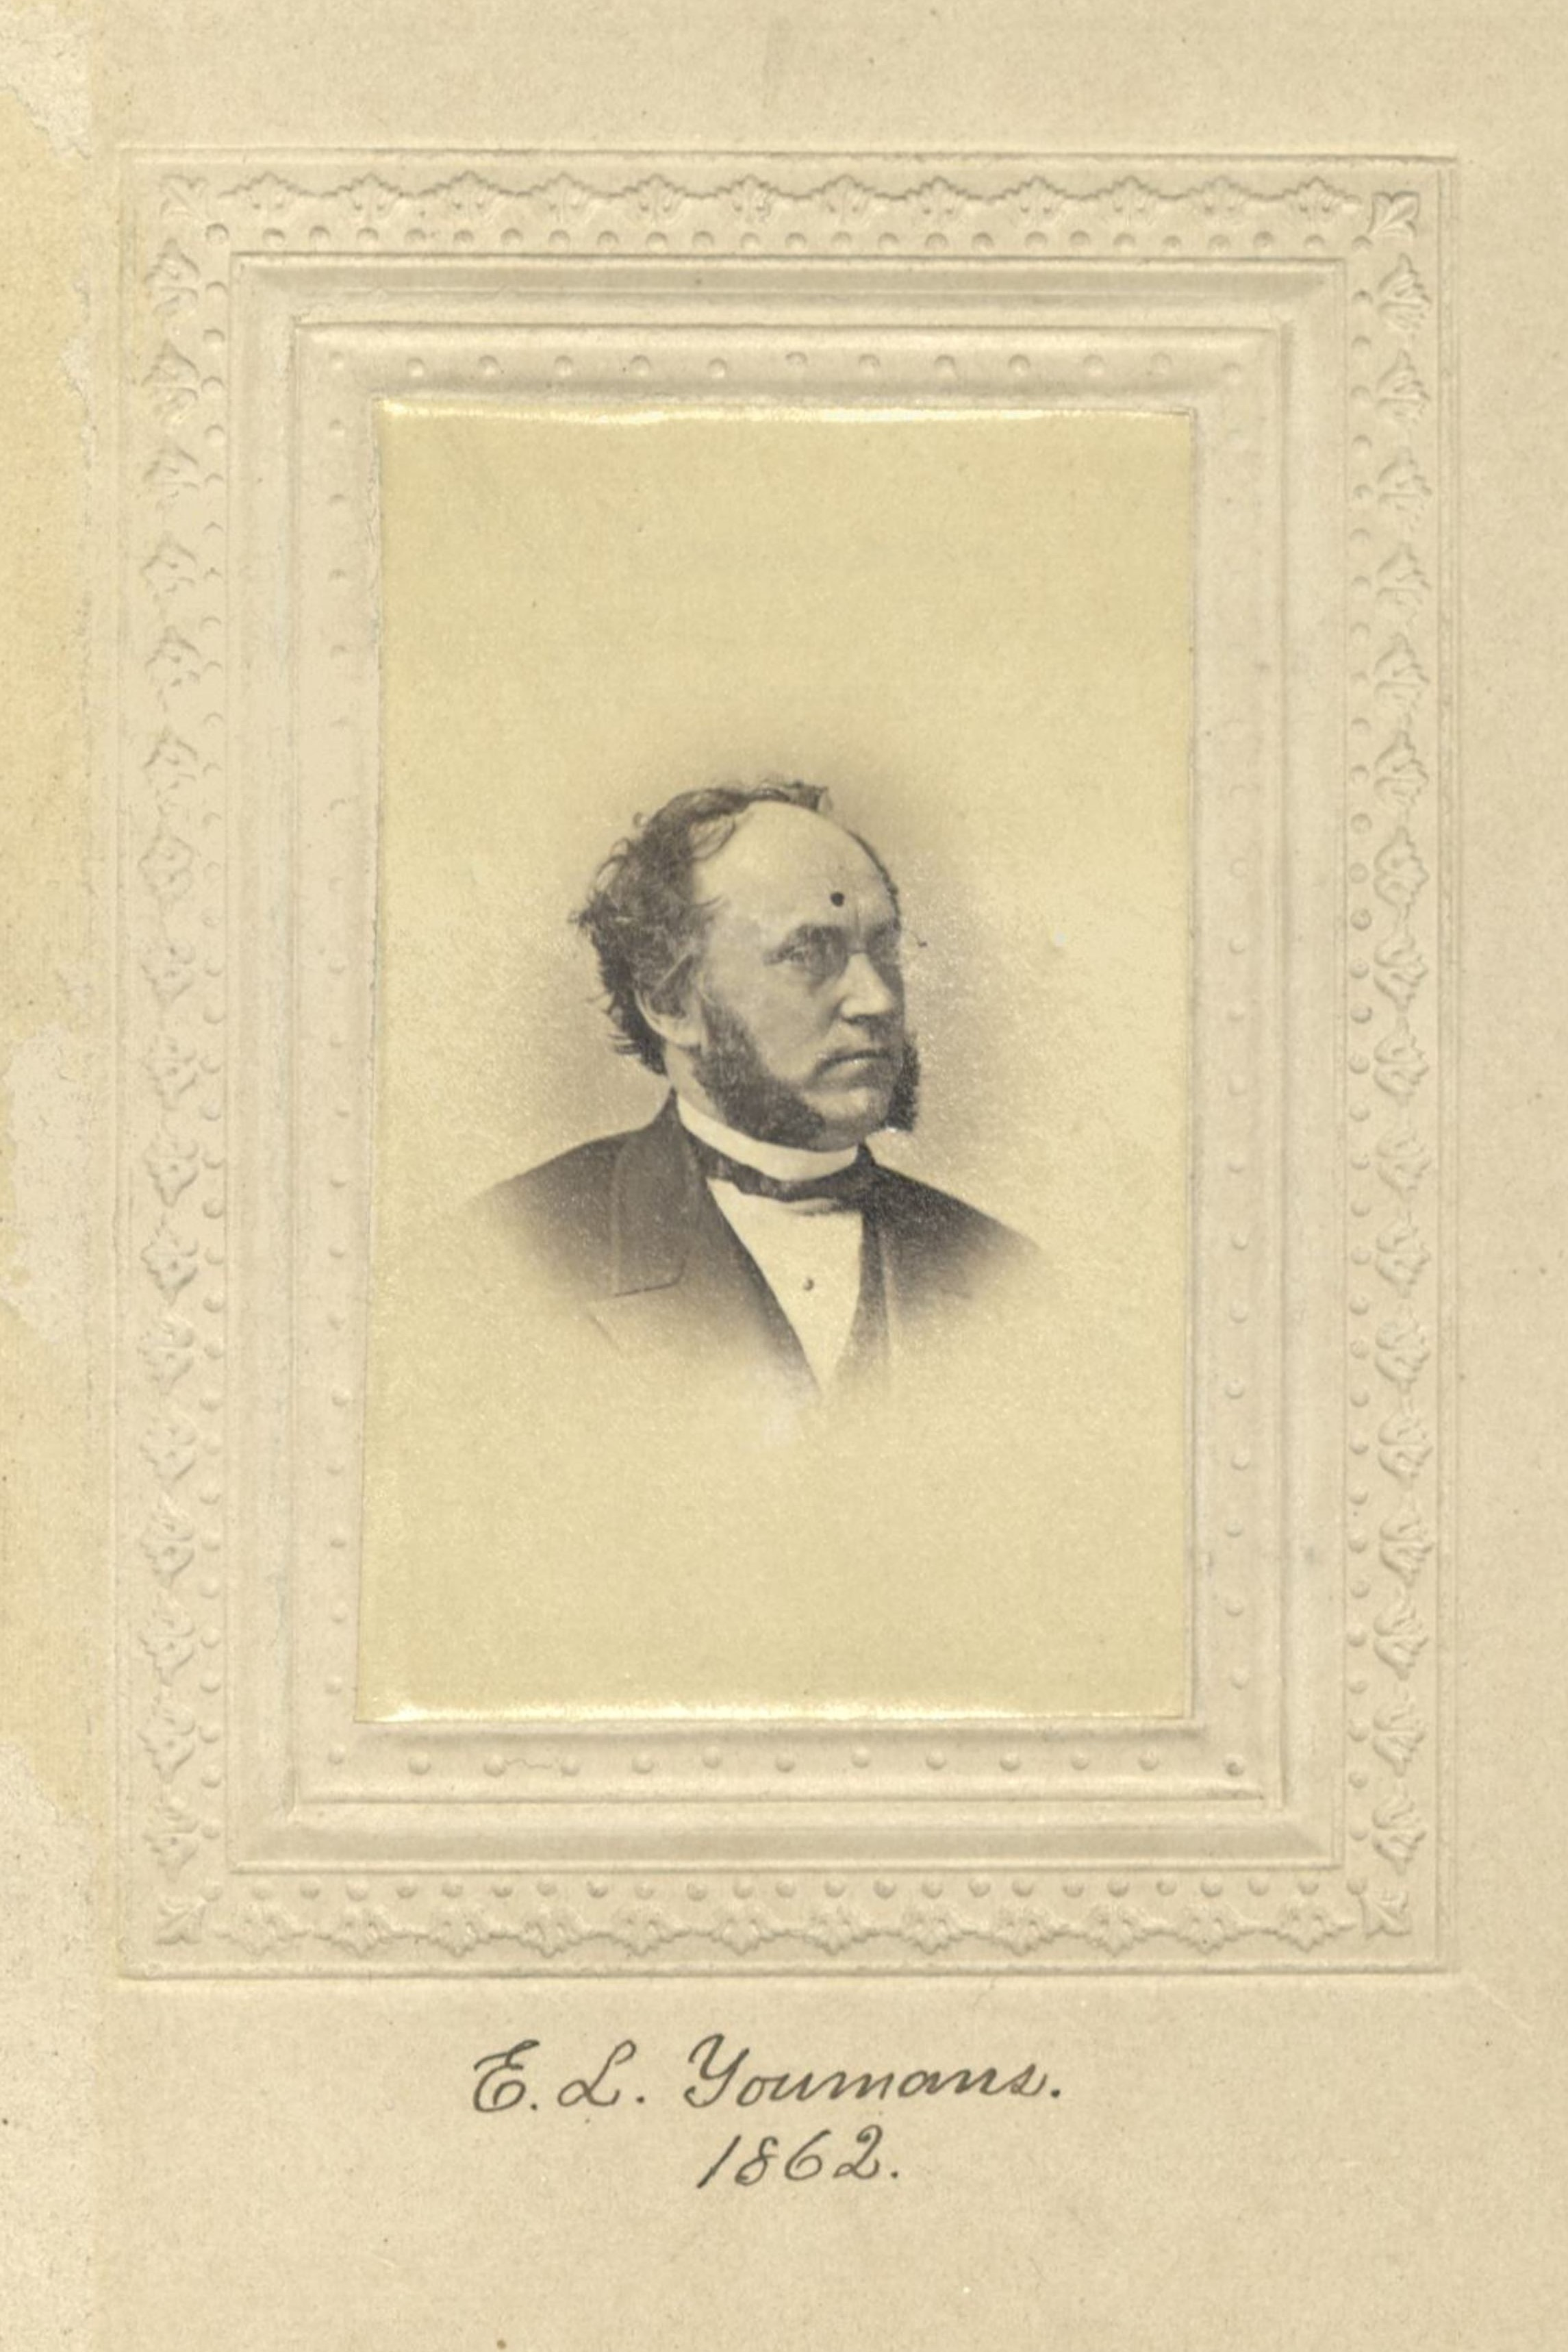 Member portrait of Edward L. Youmans